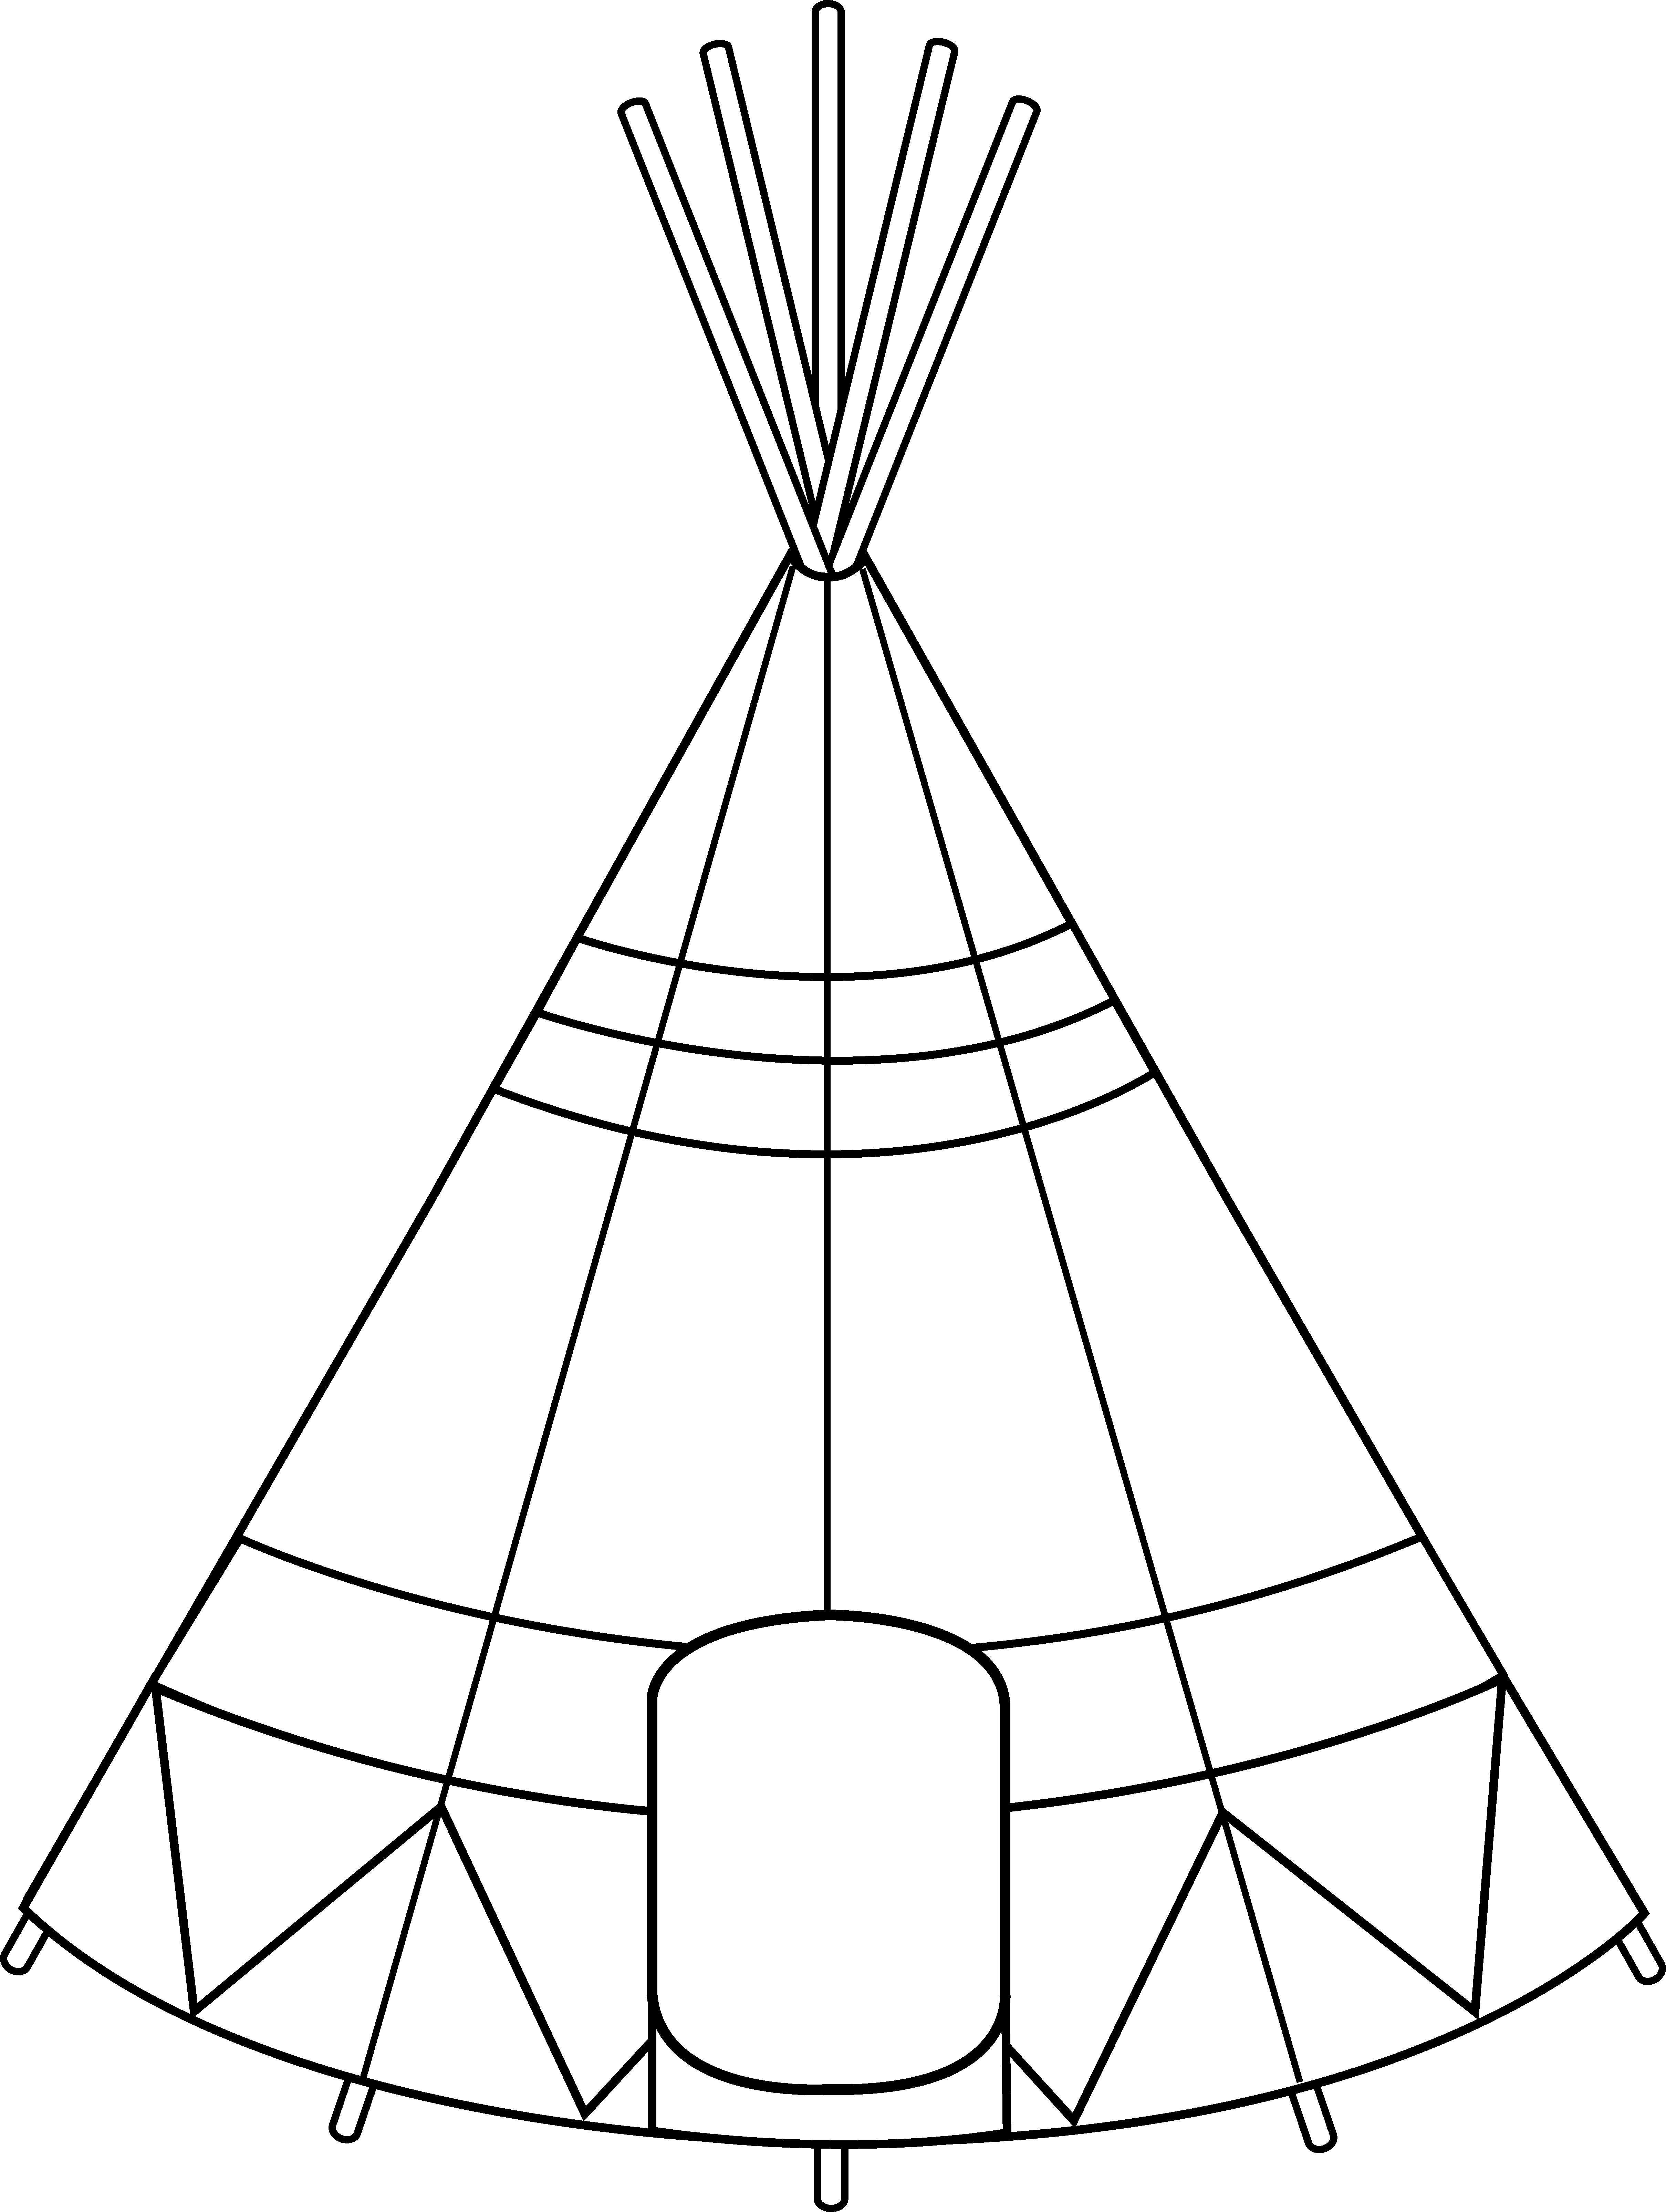 Tipi drawing. Teepee tent coloring page